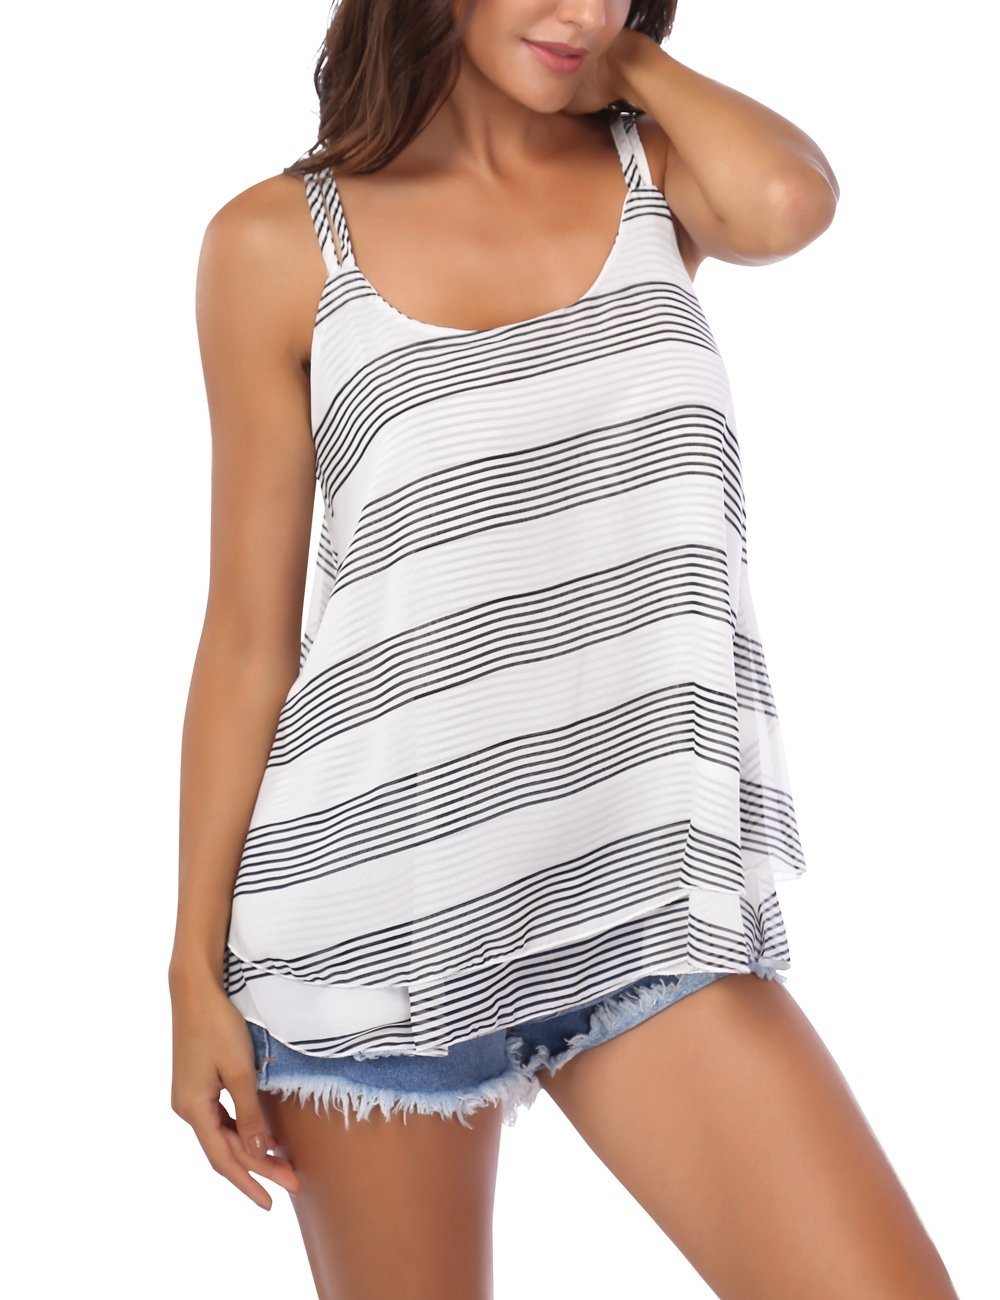 BaiShengGT Sleeveless Tops for Women, Women's Flowy V Neck Strappy Loose Tank Tops Cami Blouse Striped White L